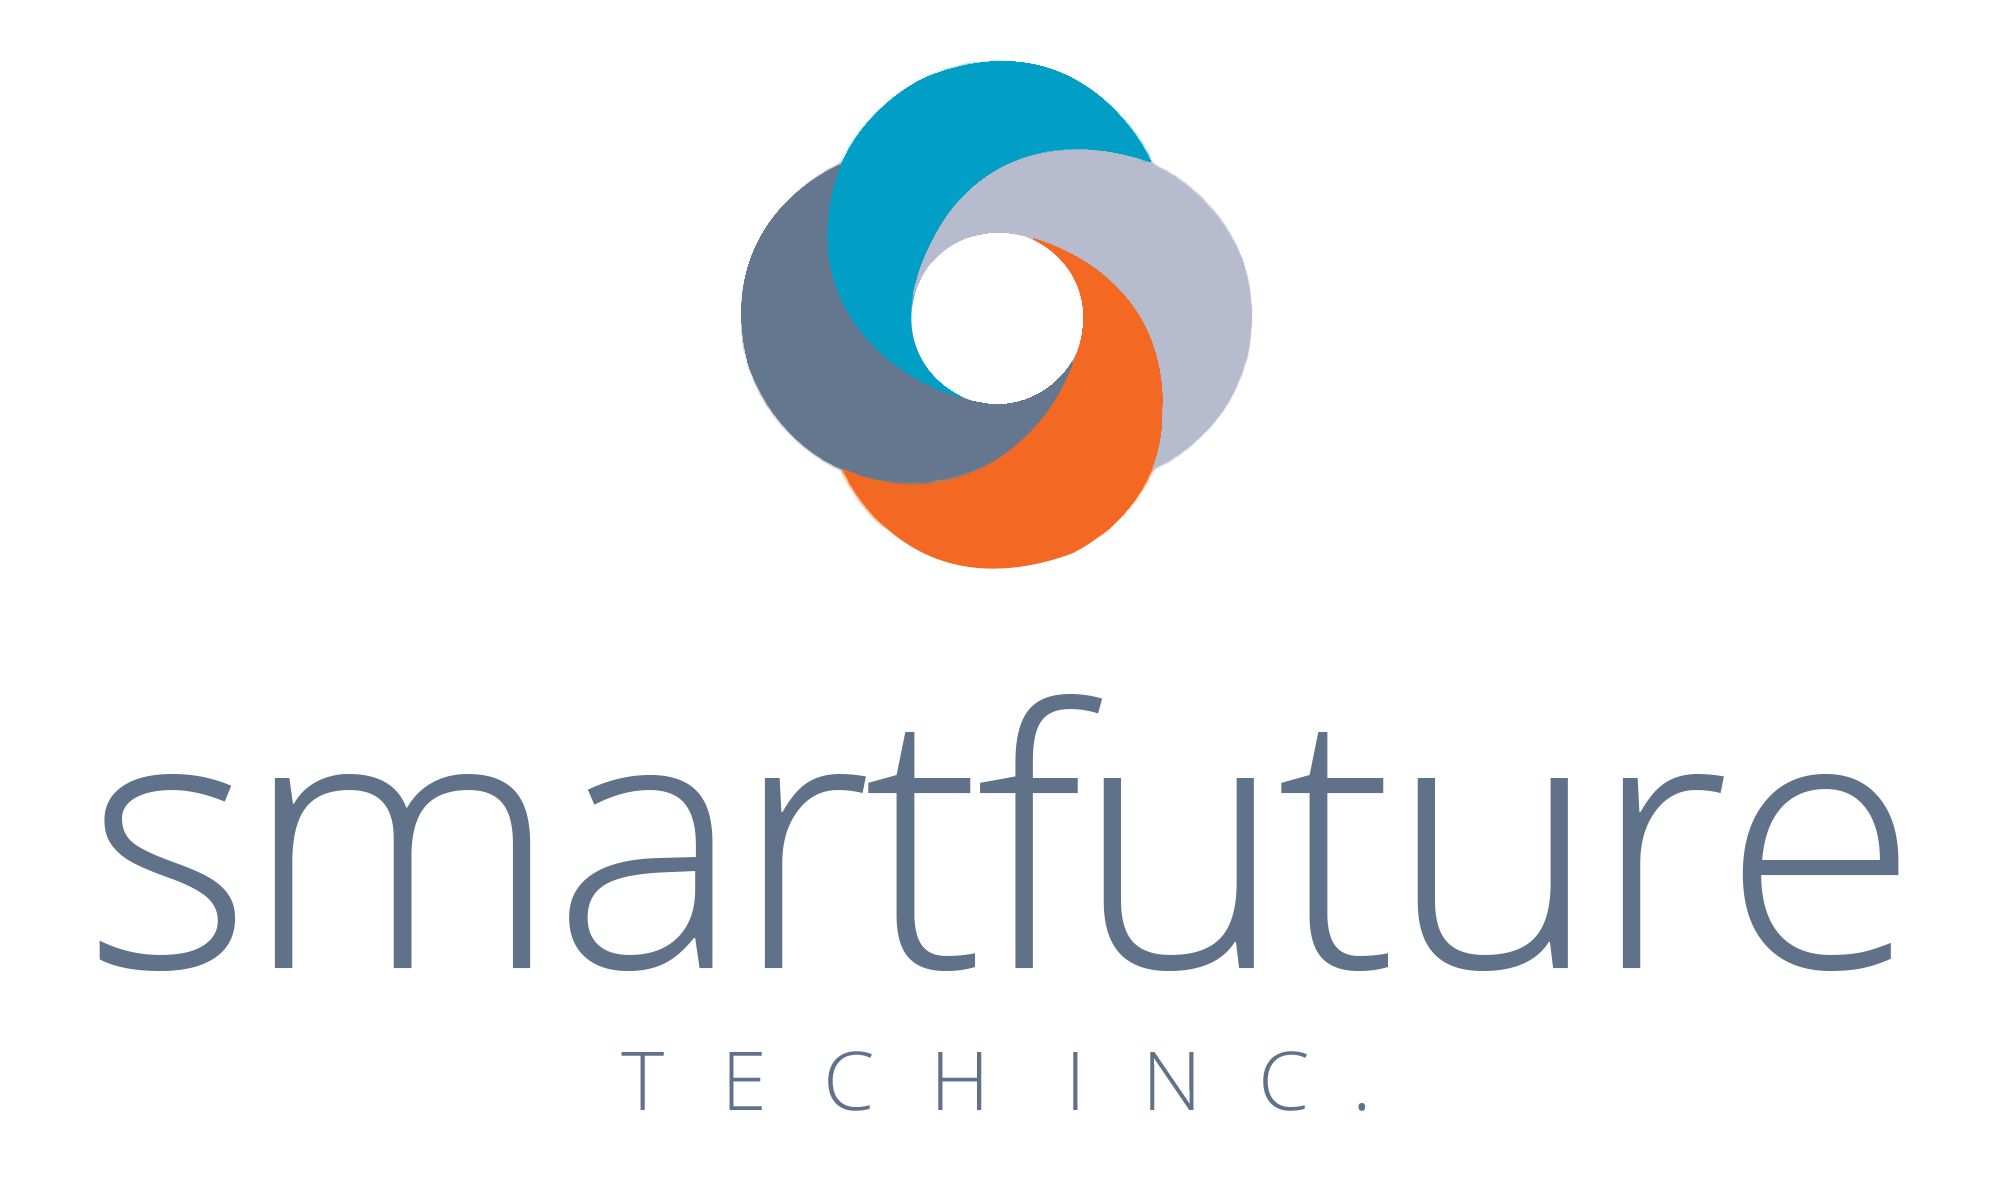 SMARTFUTURE TECH INC.